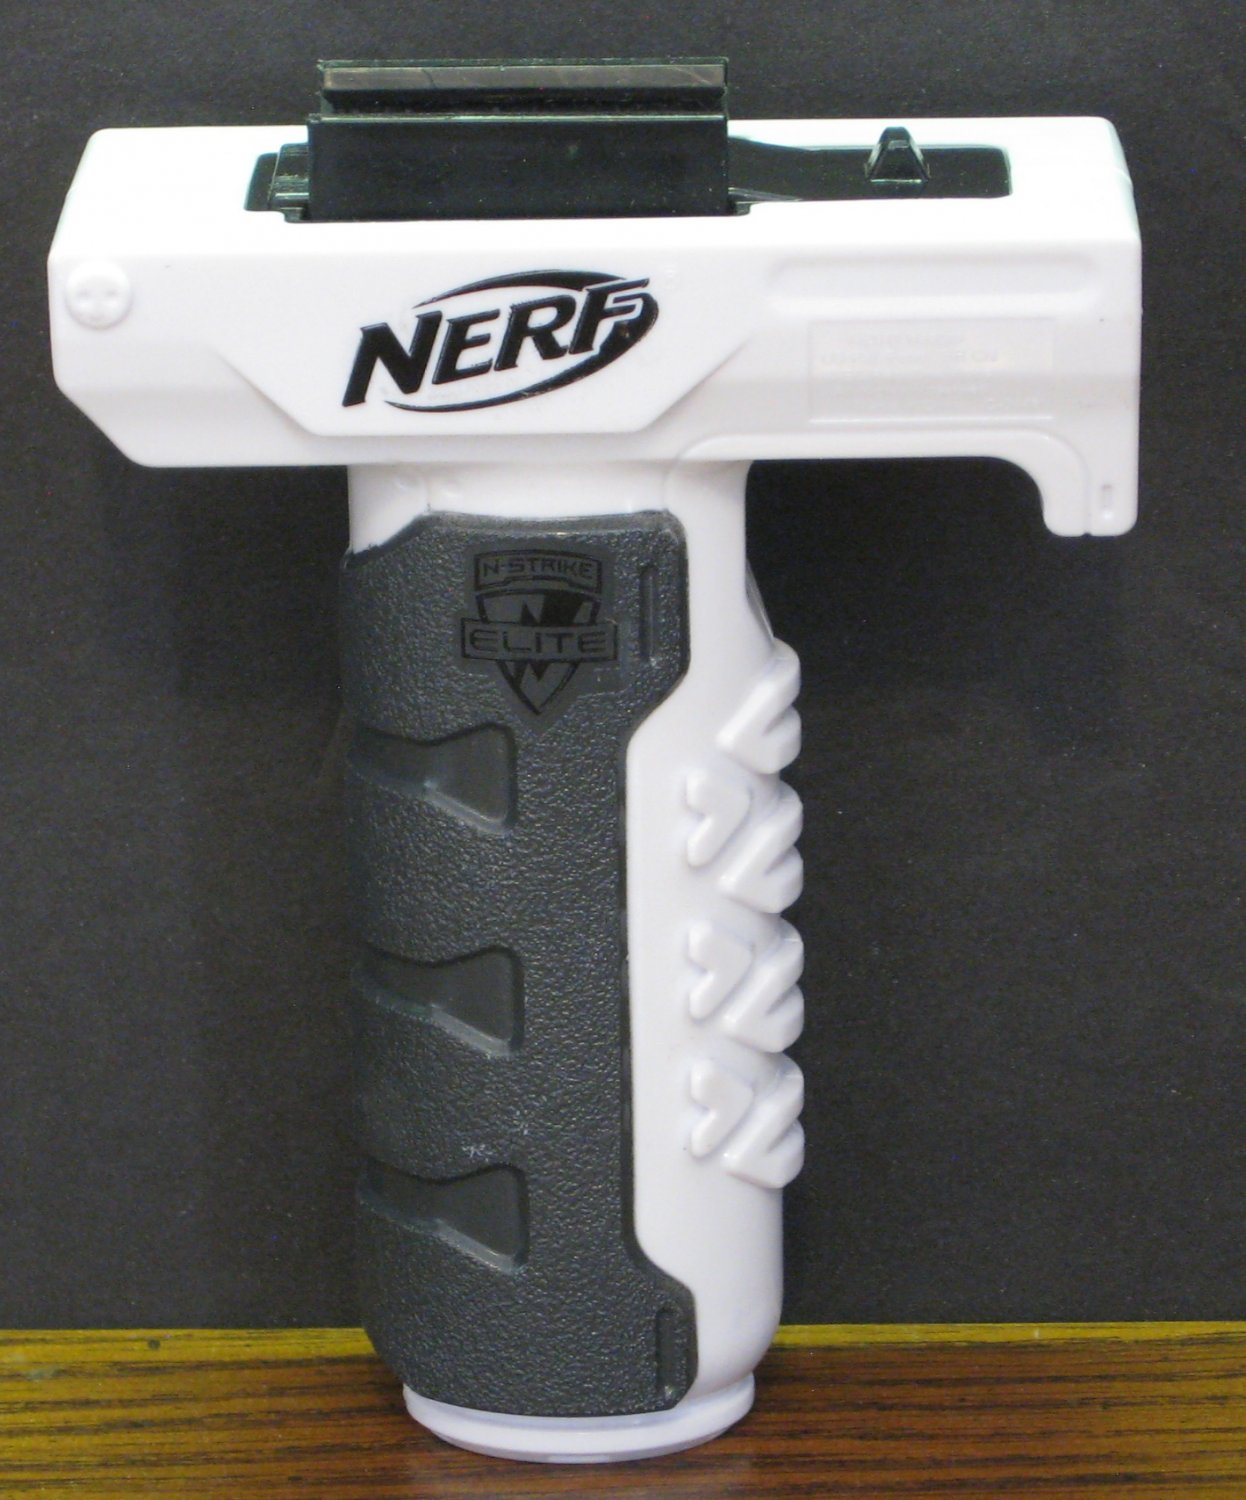 Nerf N-Strike Retaliator Pistol Grip - White Elite XD Edition